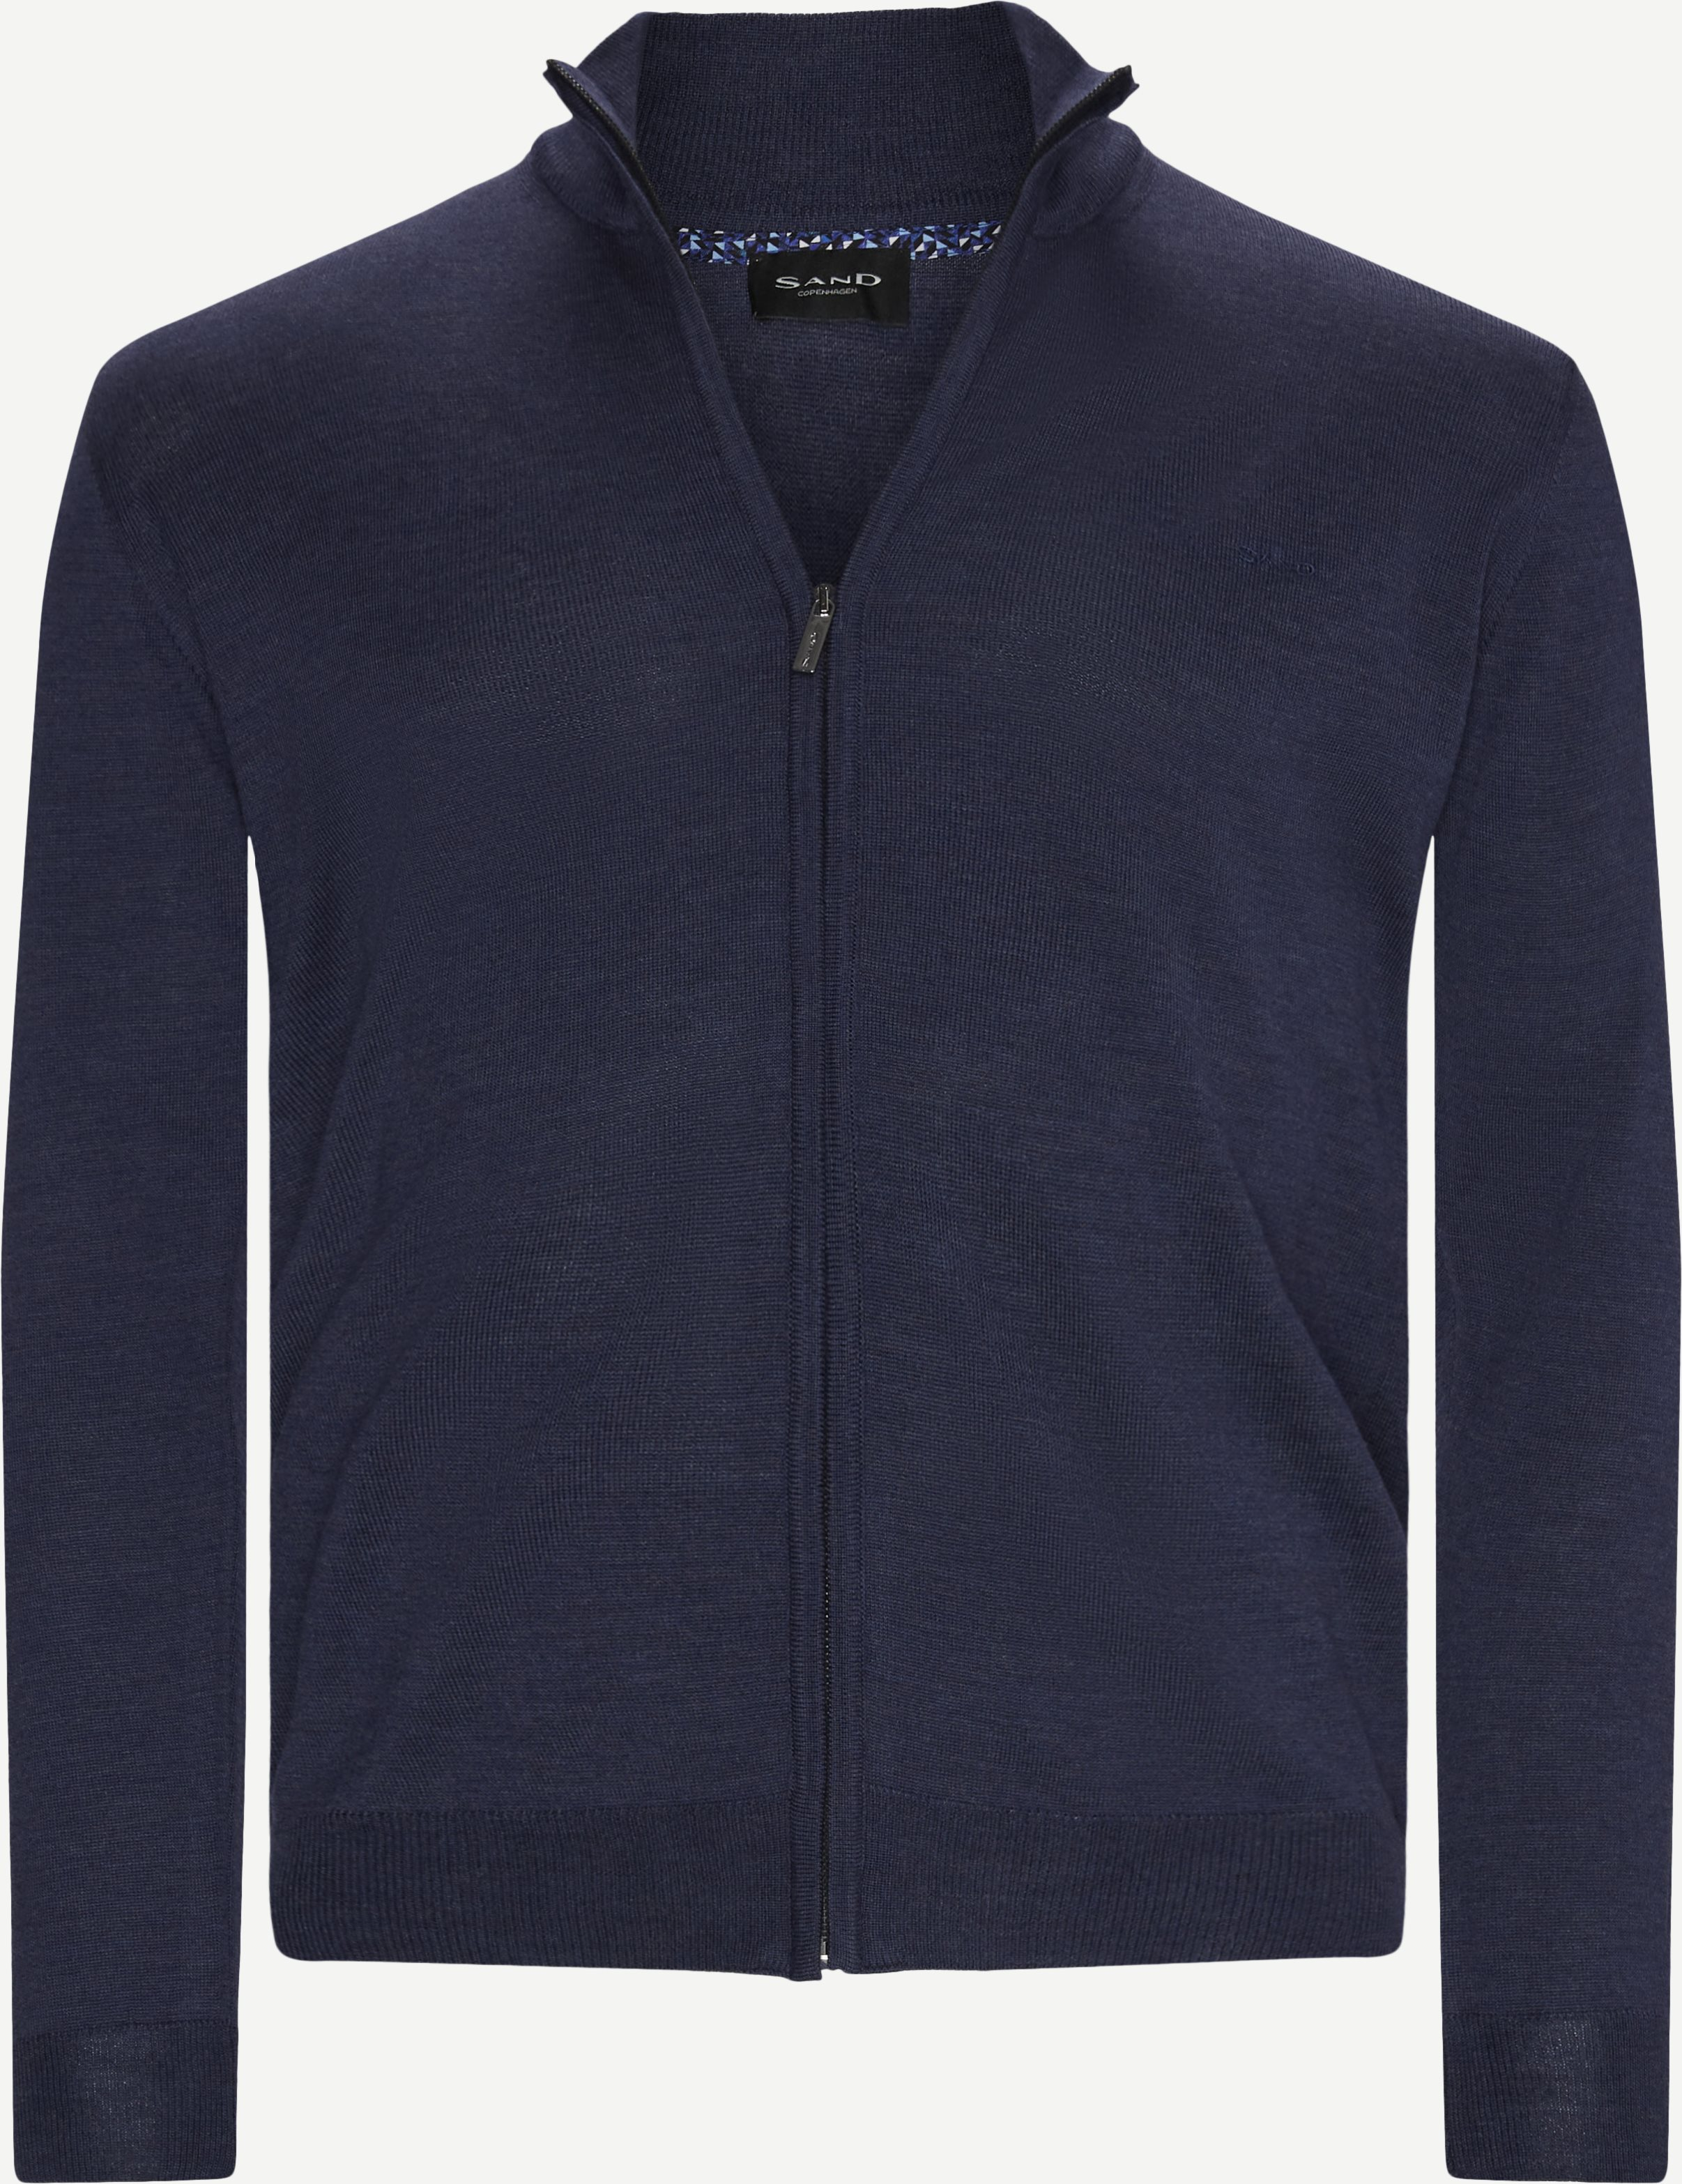 Merino Embr. Cardigan - Knitwear - Regular - Denim